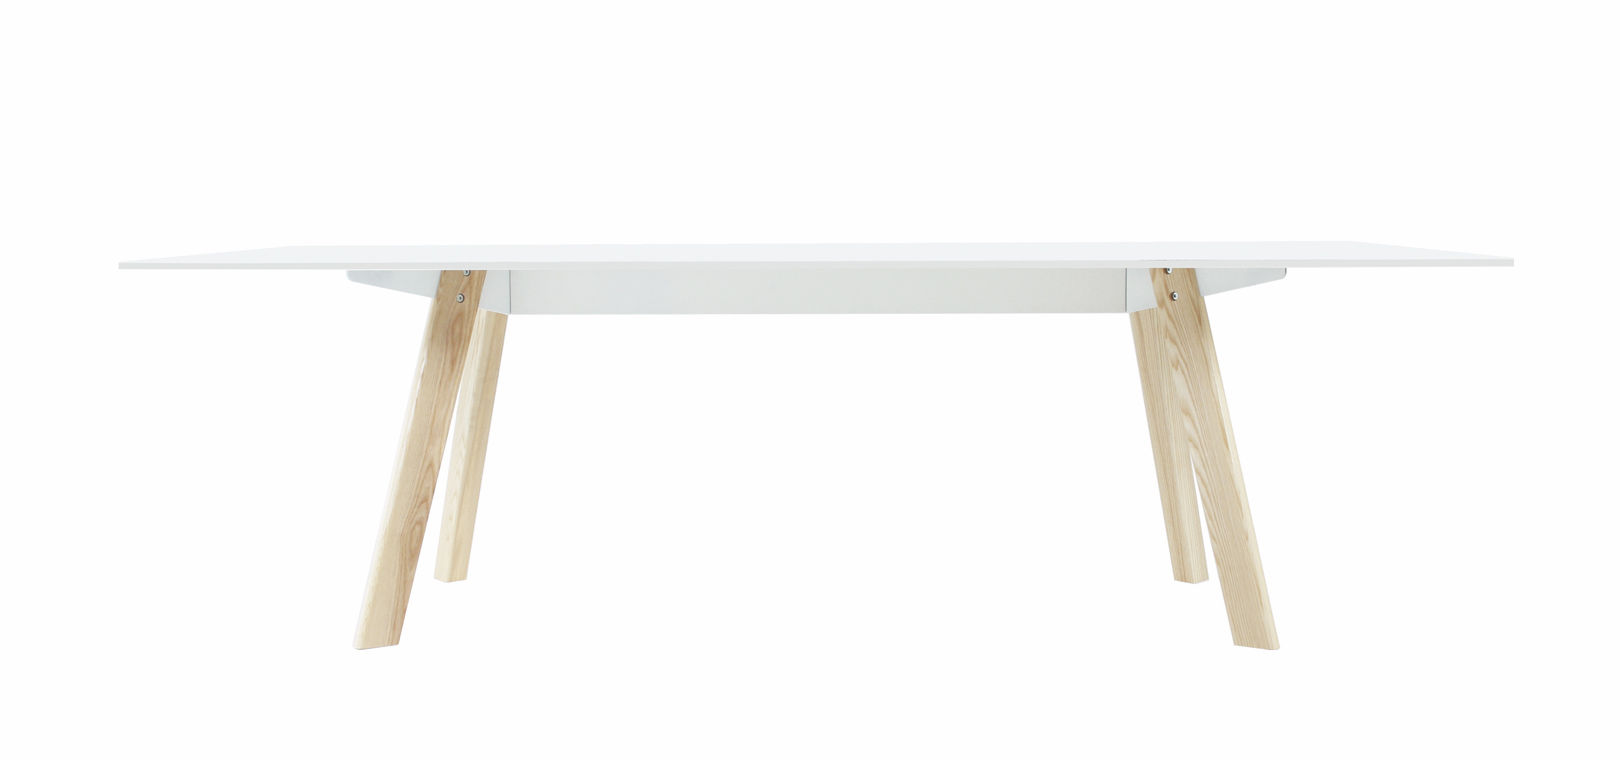 Incroyable Contemporary Dining Table / Laminate / Rectangular   CONNECT By Jonathan  Prestwich